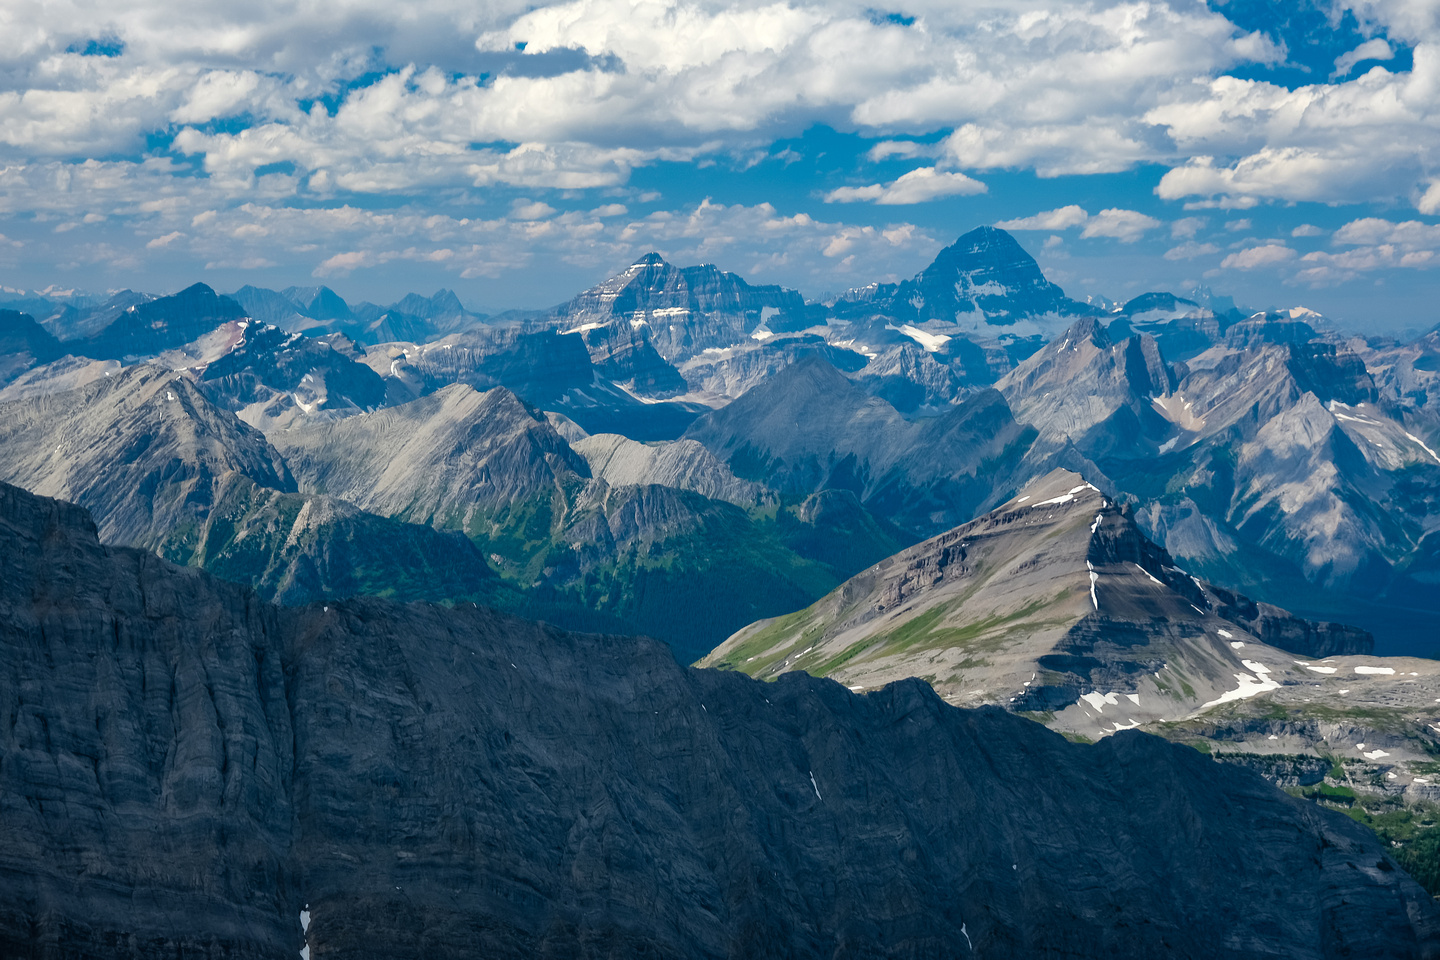 Snow Peak in the fg with Eon and Mount Assiniboine rising beyond.